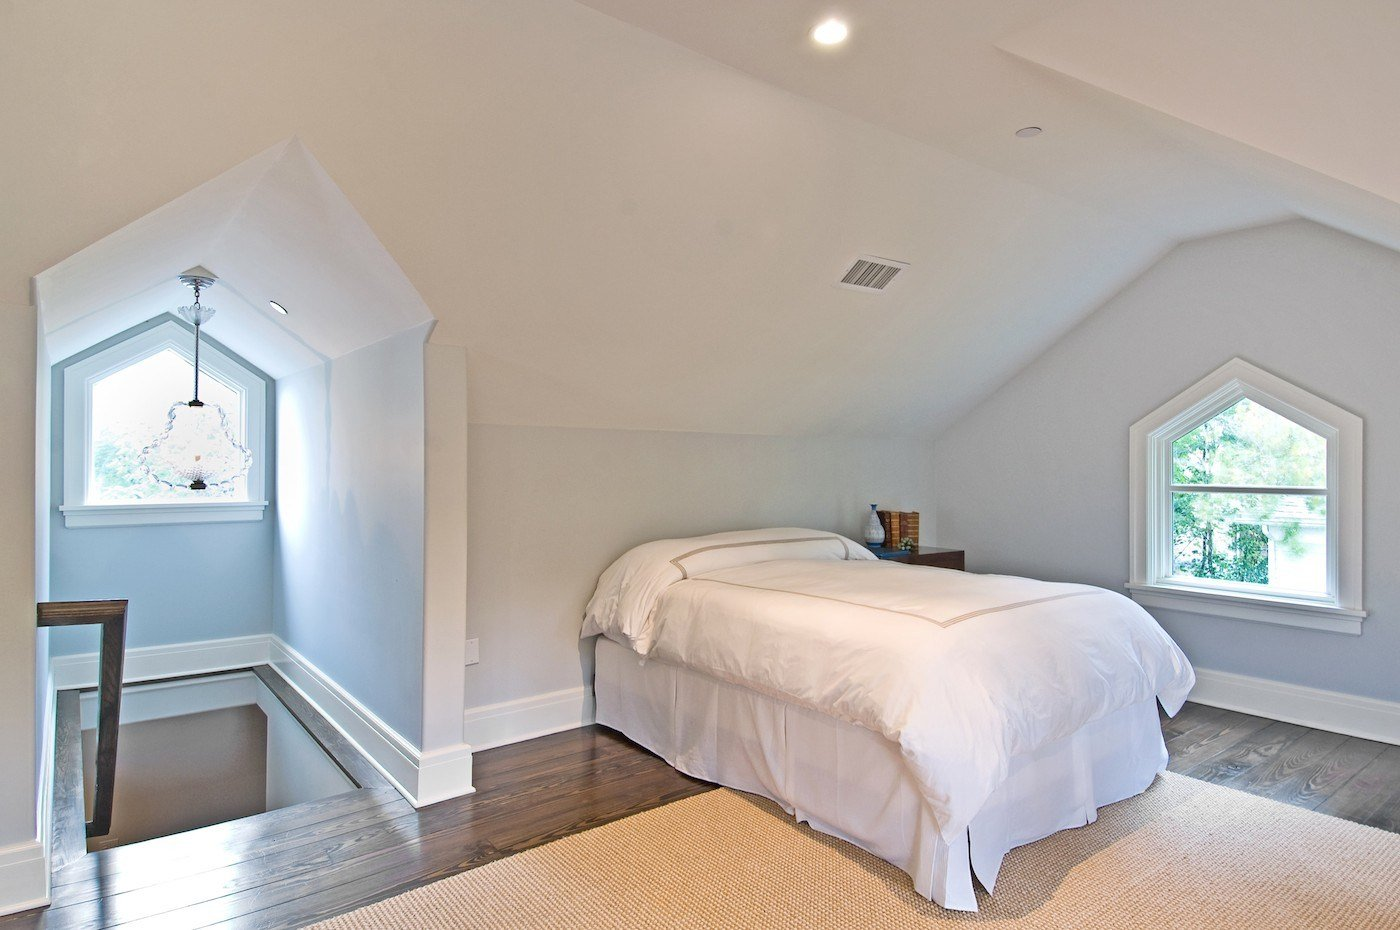 Best Should You Convert Your Seattle Attic Into A Bedroom Porch Com With Pictures